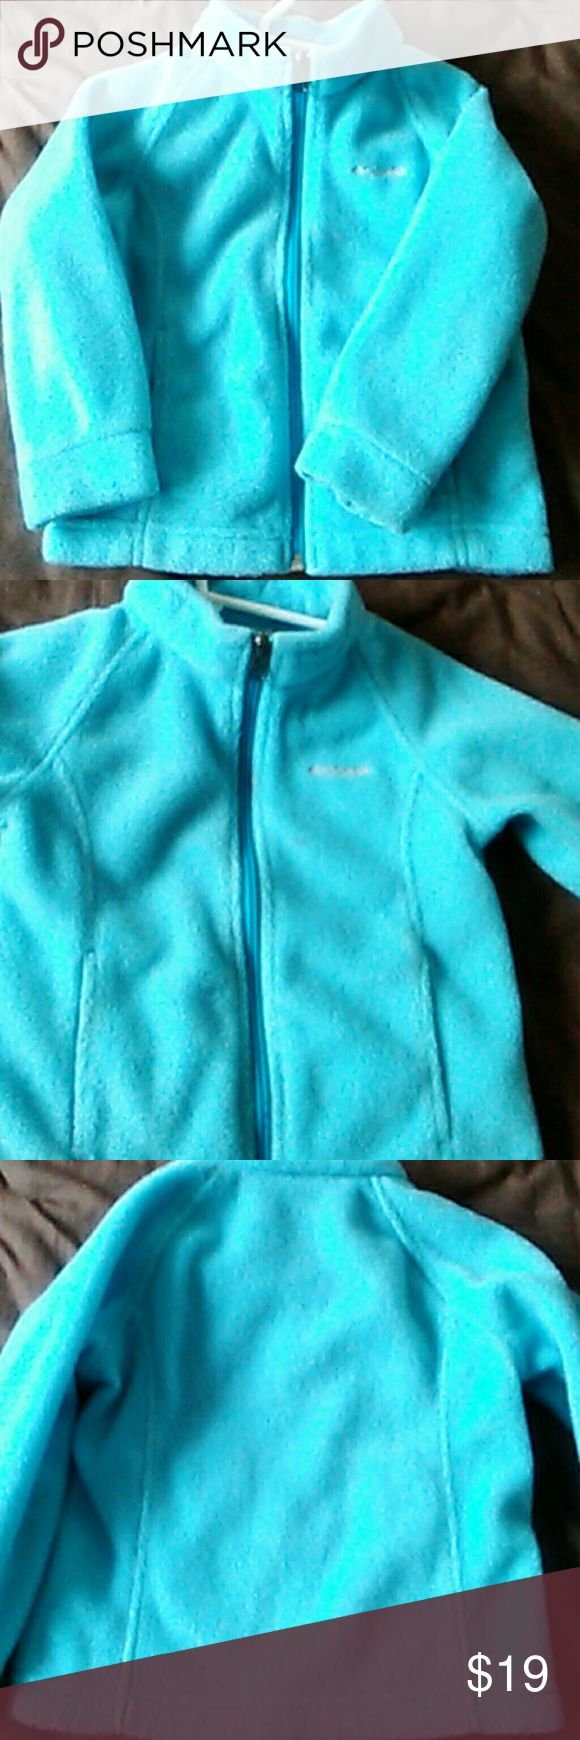 COLUMBIA Coat Size 3t Light blue coat in great condition with no stains or tears. Comes from a smoke and pet free home. Columbia Jackets & Coats